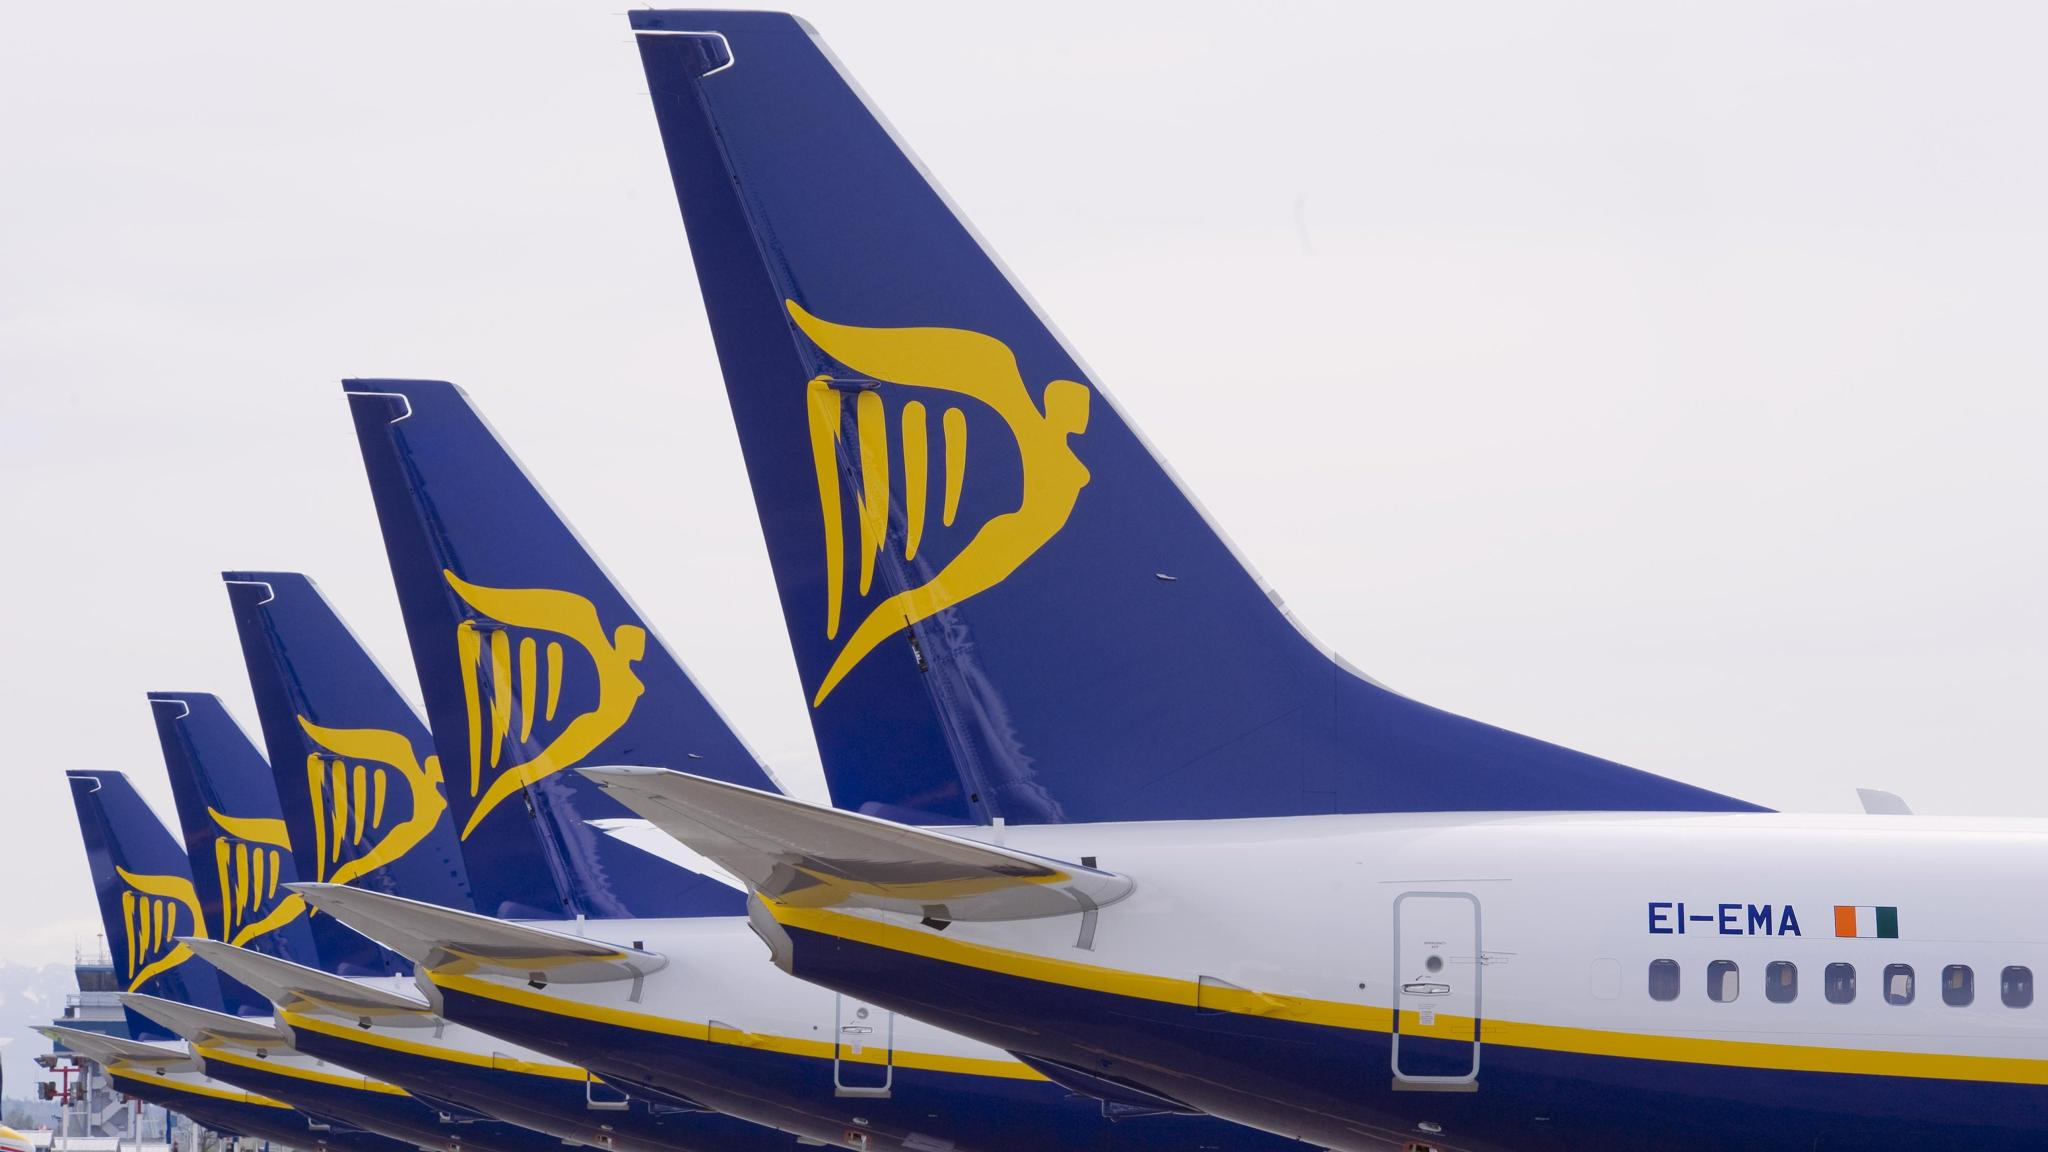 Ryanair And Hertz Head For Courts After Car Hire Deal Breaks Down